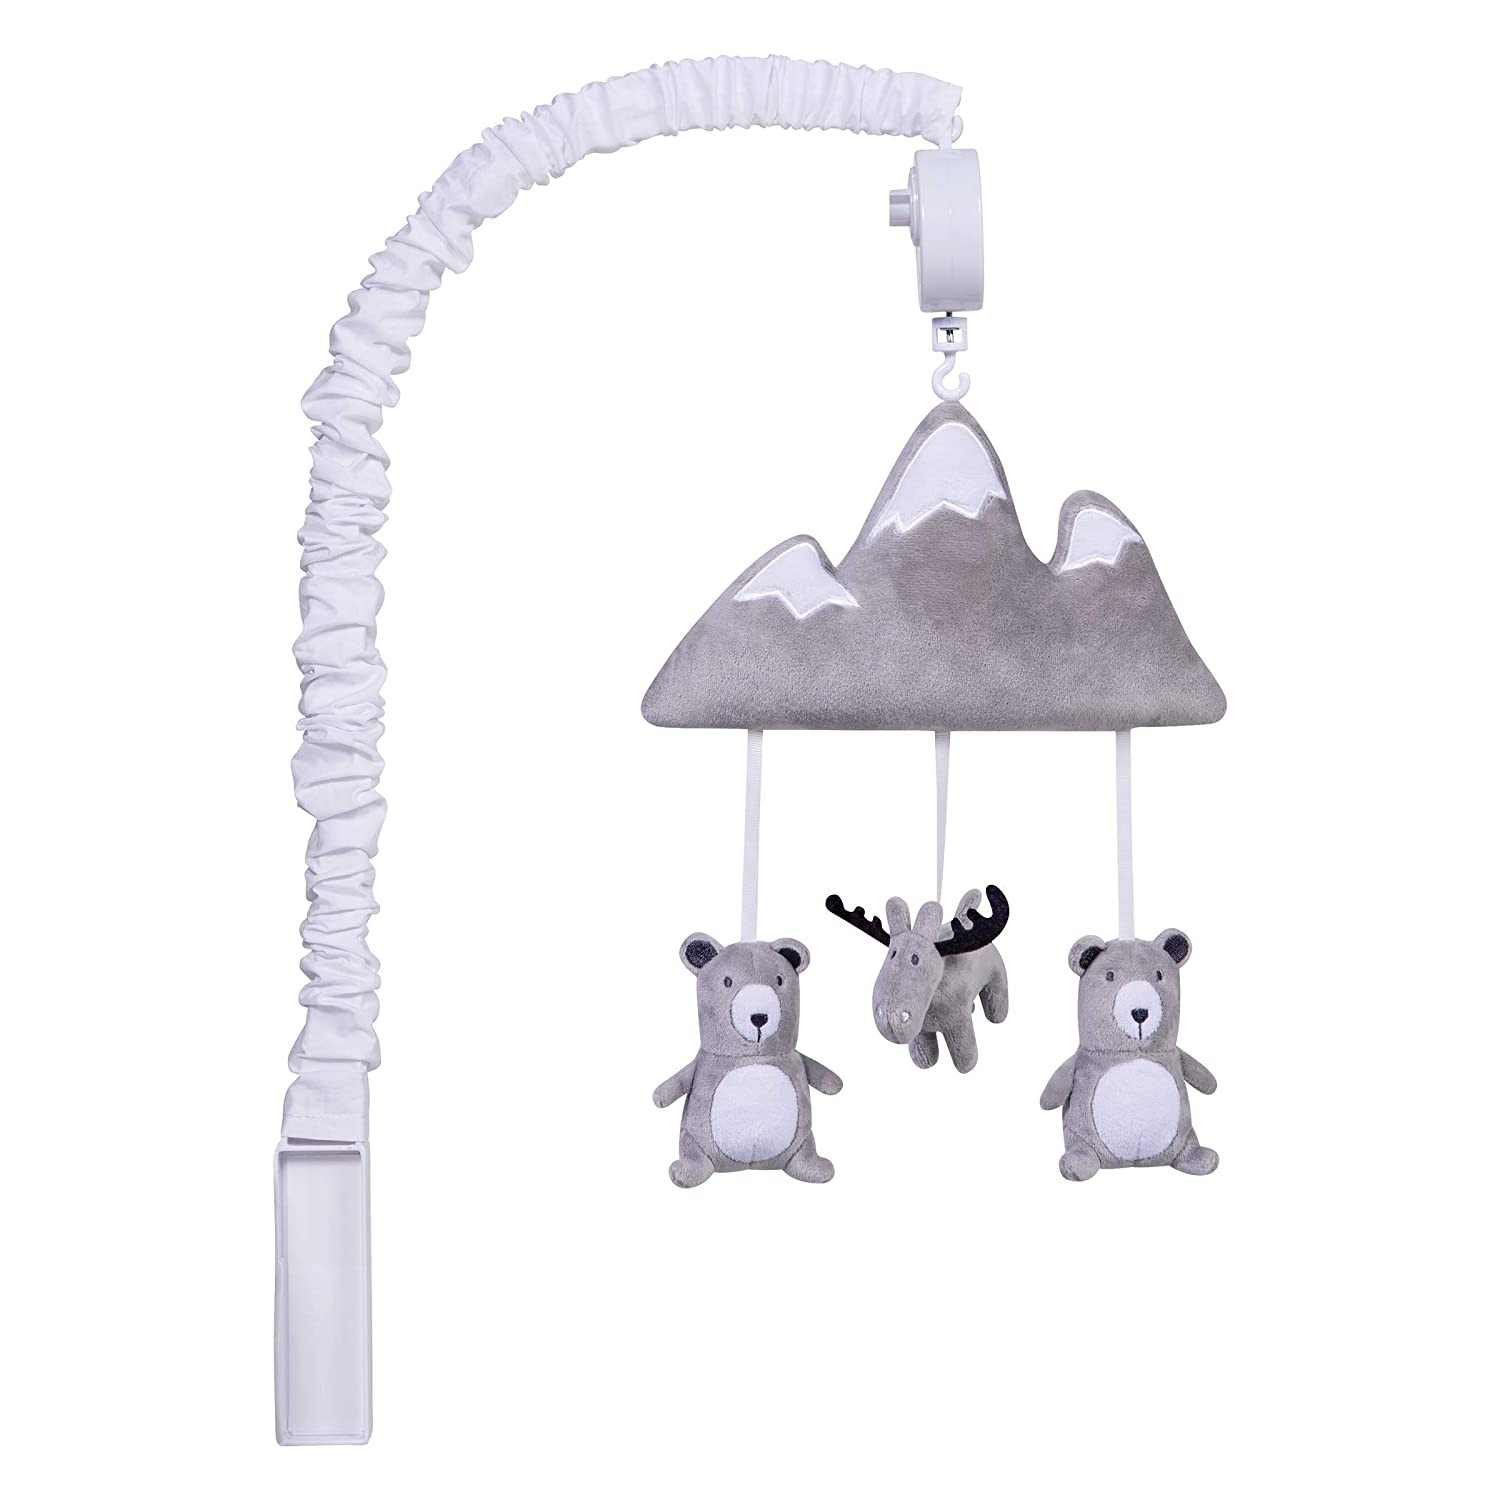 Top 10 Best Baby Mobiles For Nursery (2020 Reviews & Buying Guide) 3